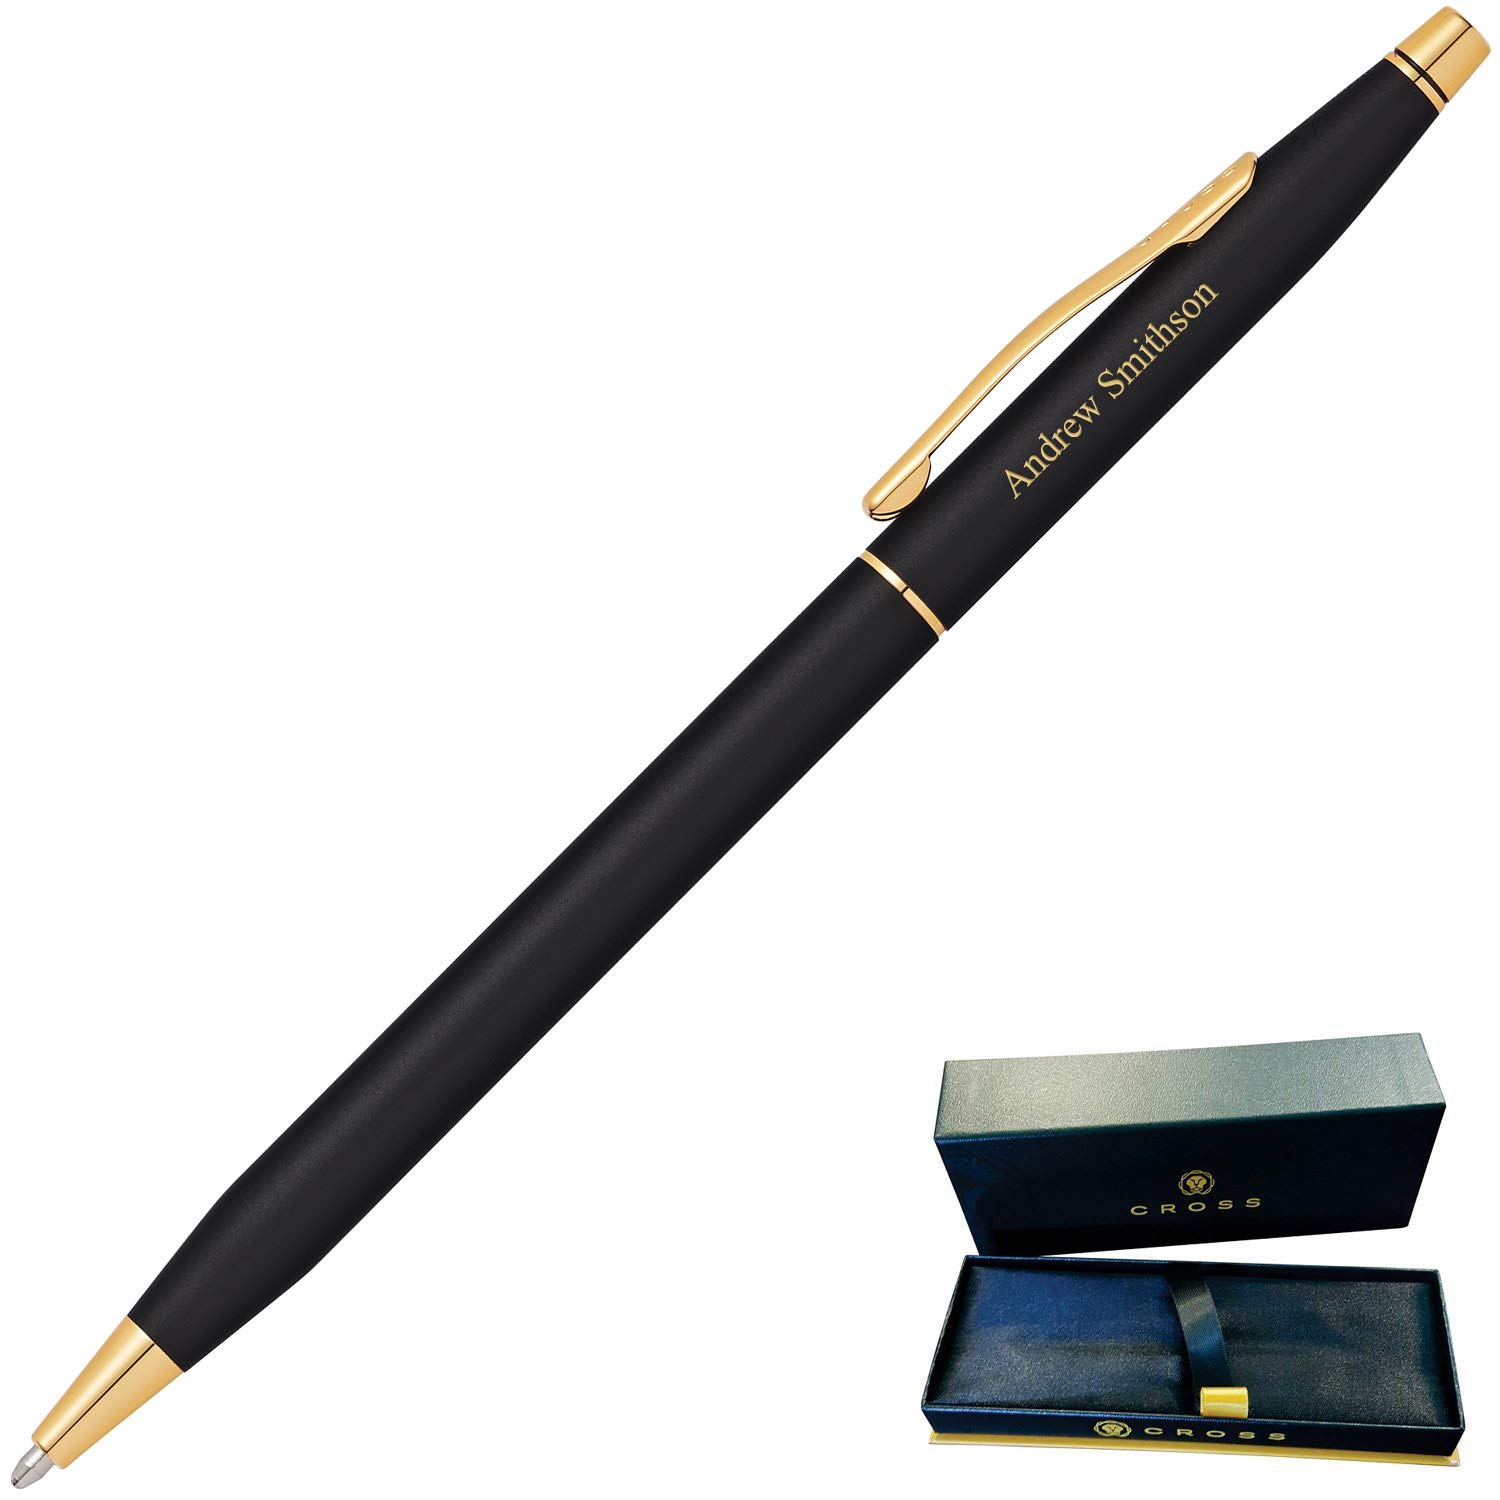 Dayspring Pens | Engraved/Personalized Cross Classic Century Black Ballpoint Pen with Gold Trim 2502. Custom Engraved Fast! by Dayspring Pens (Image #3)